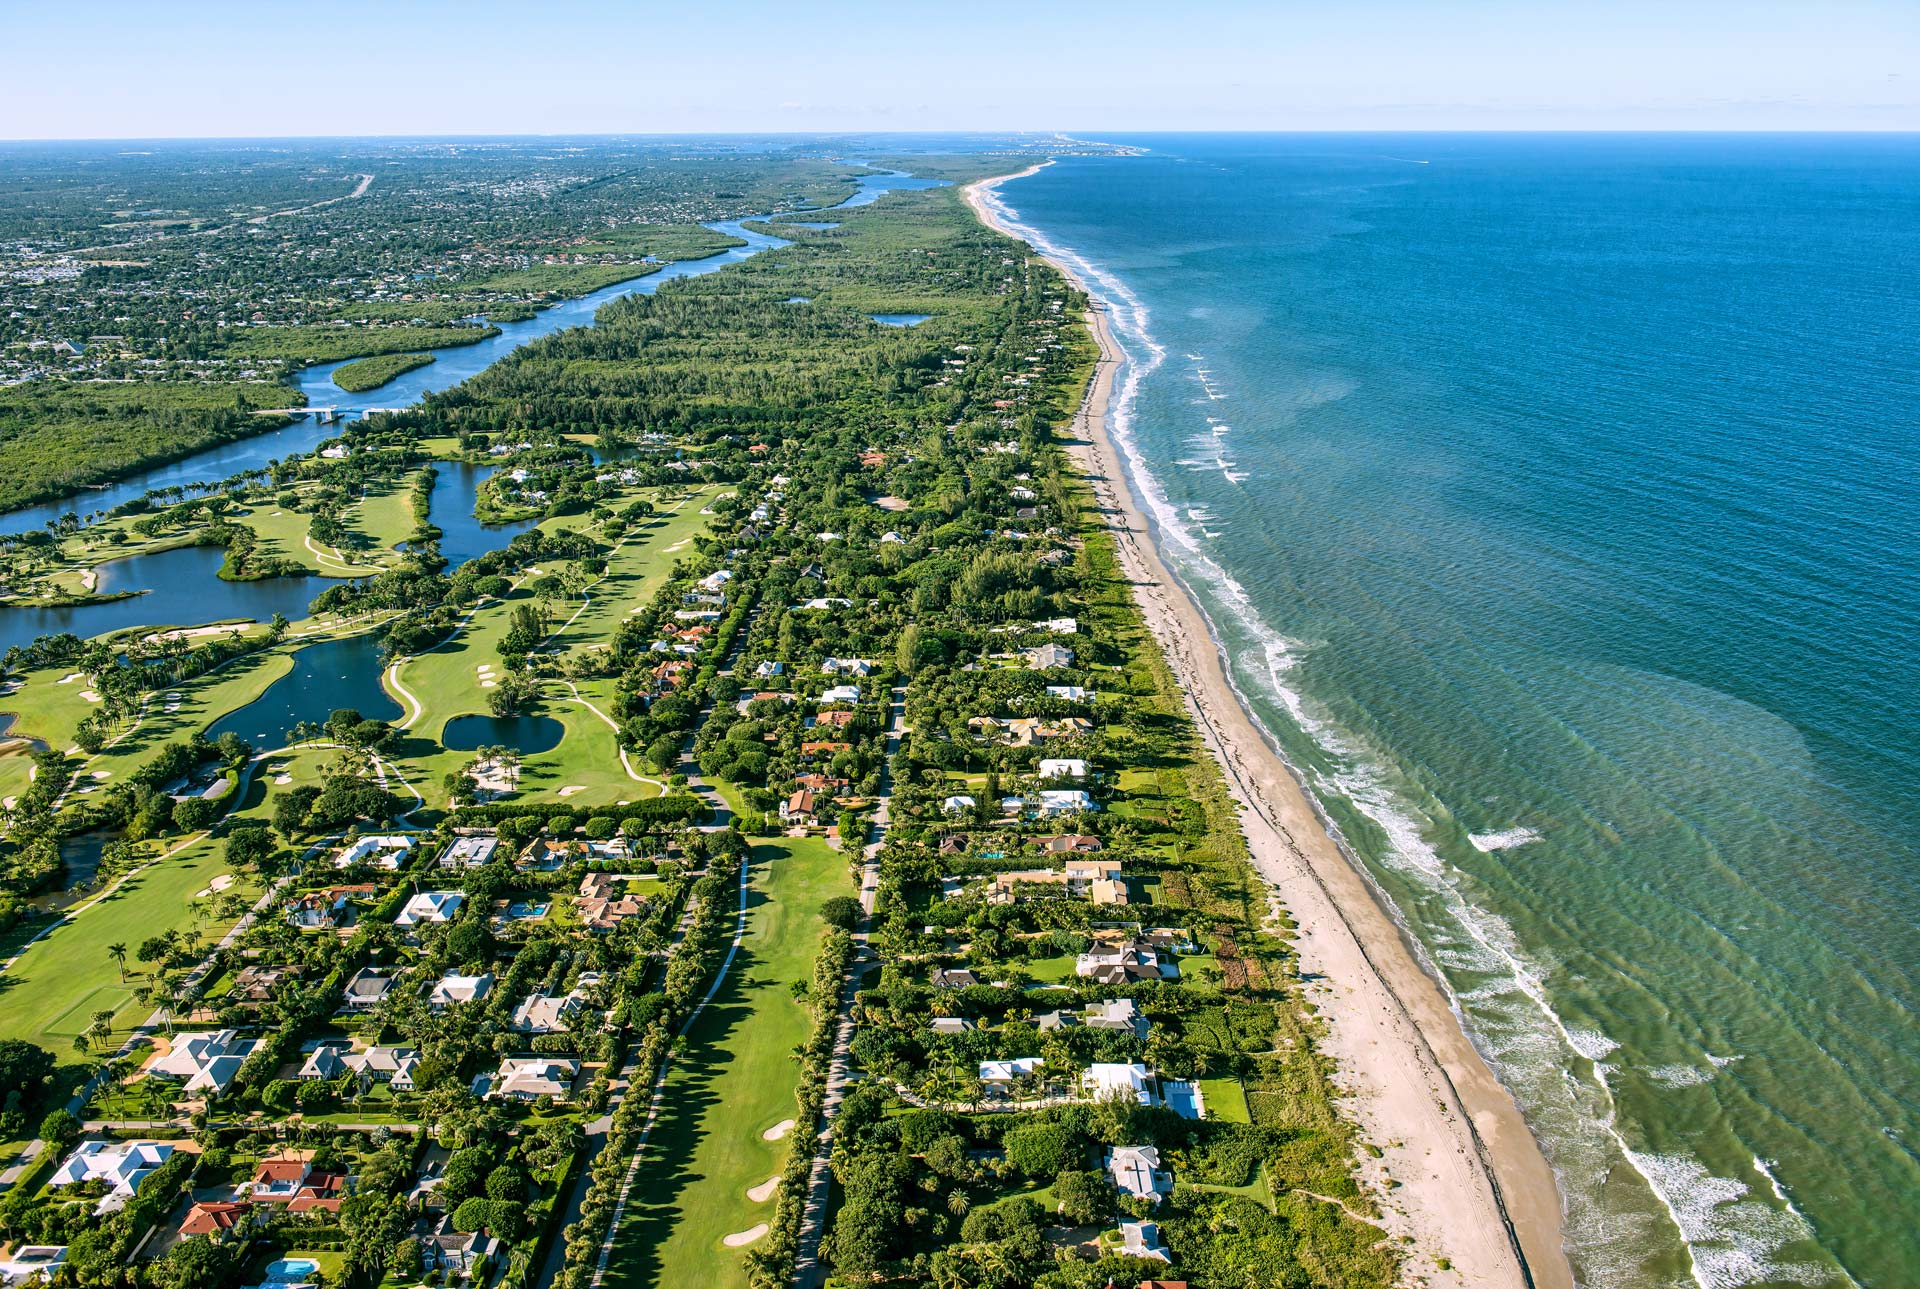 South Florida golf and ocean